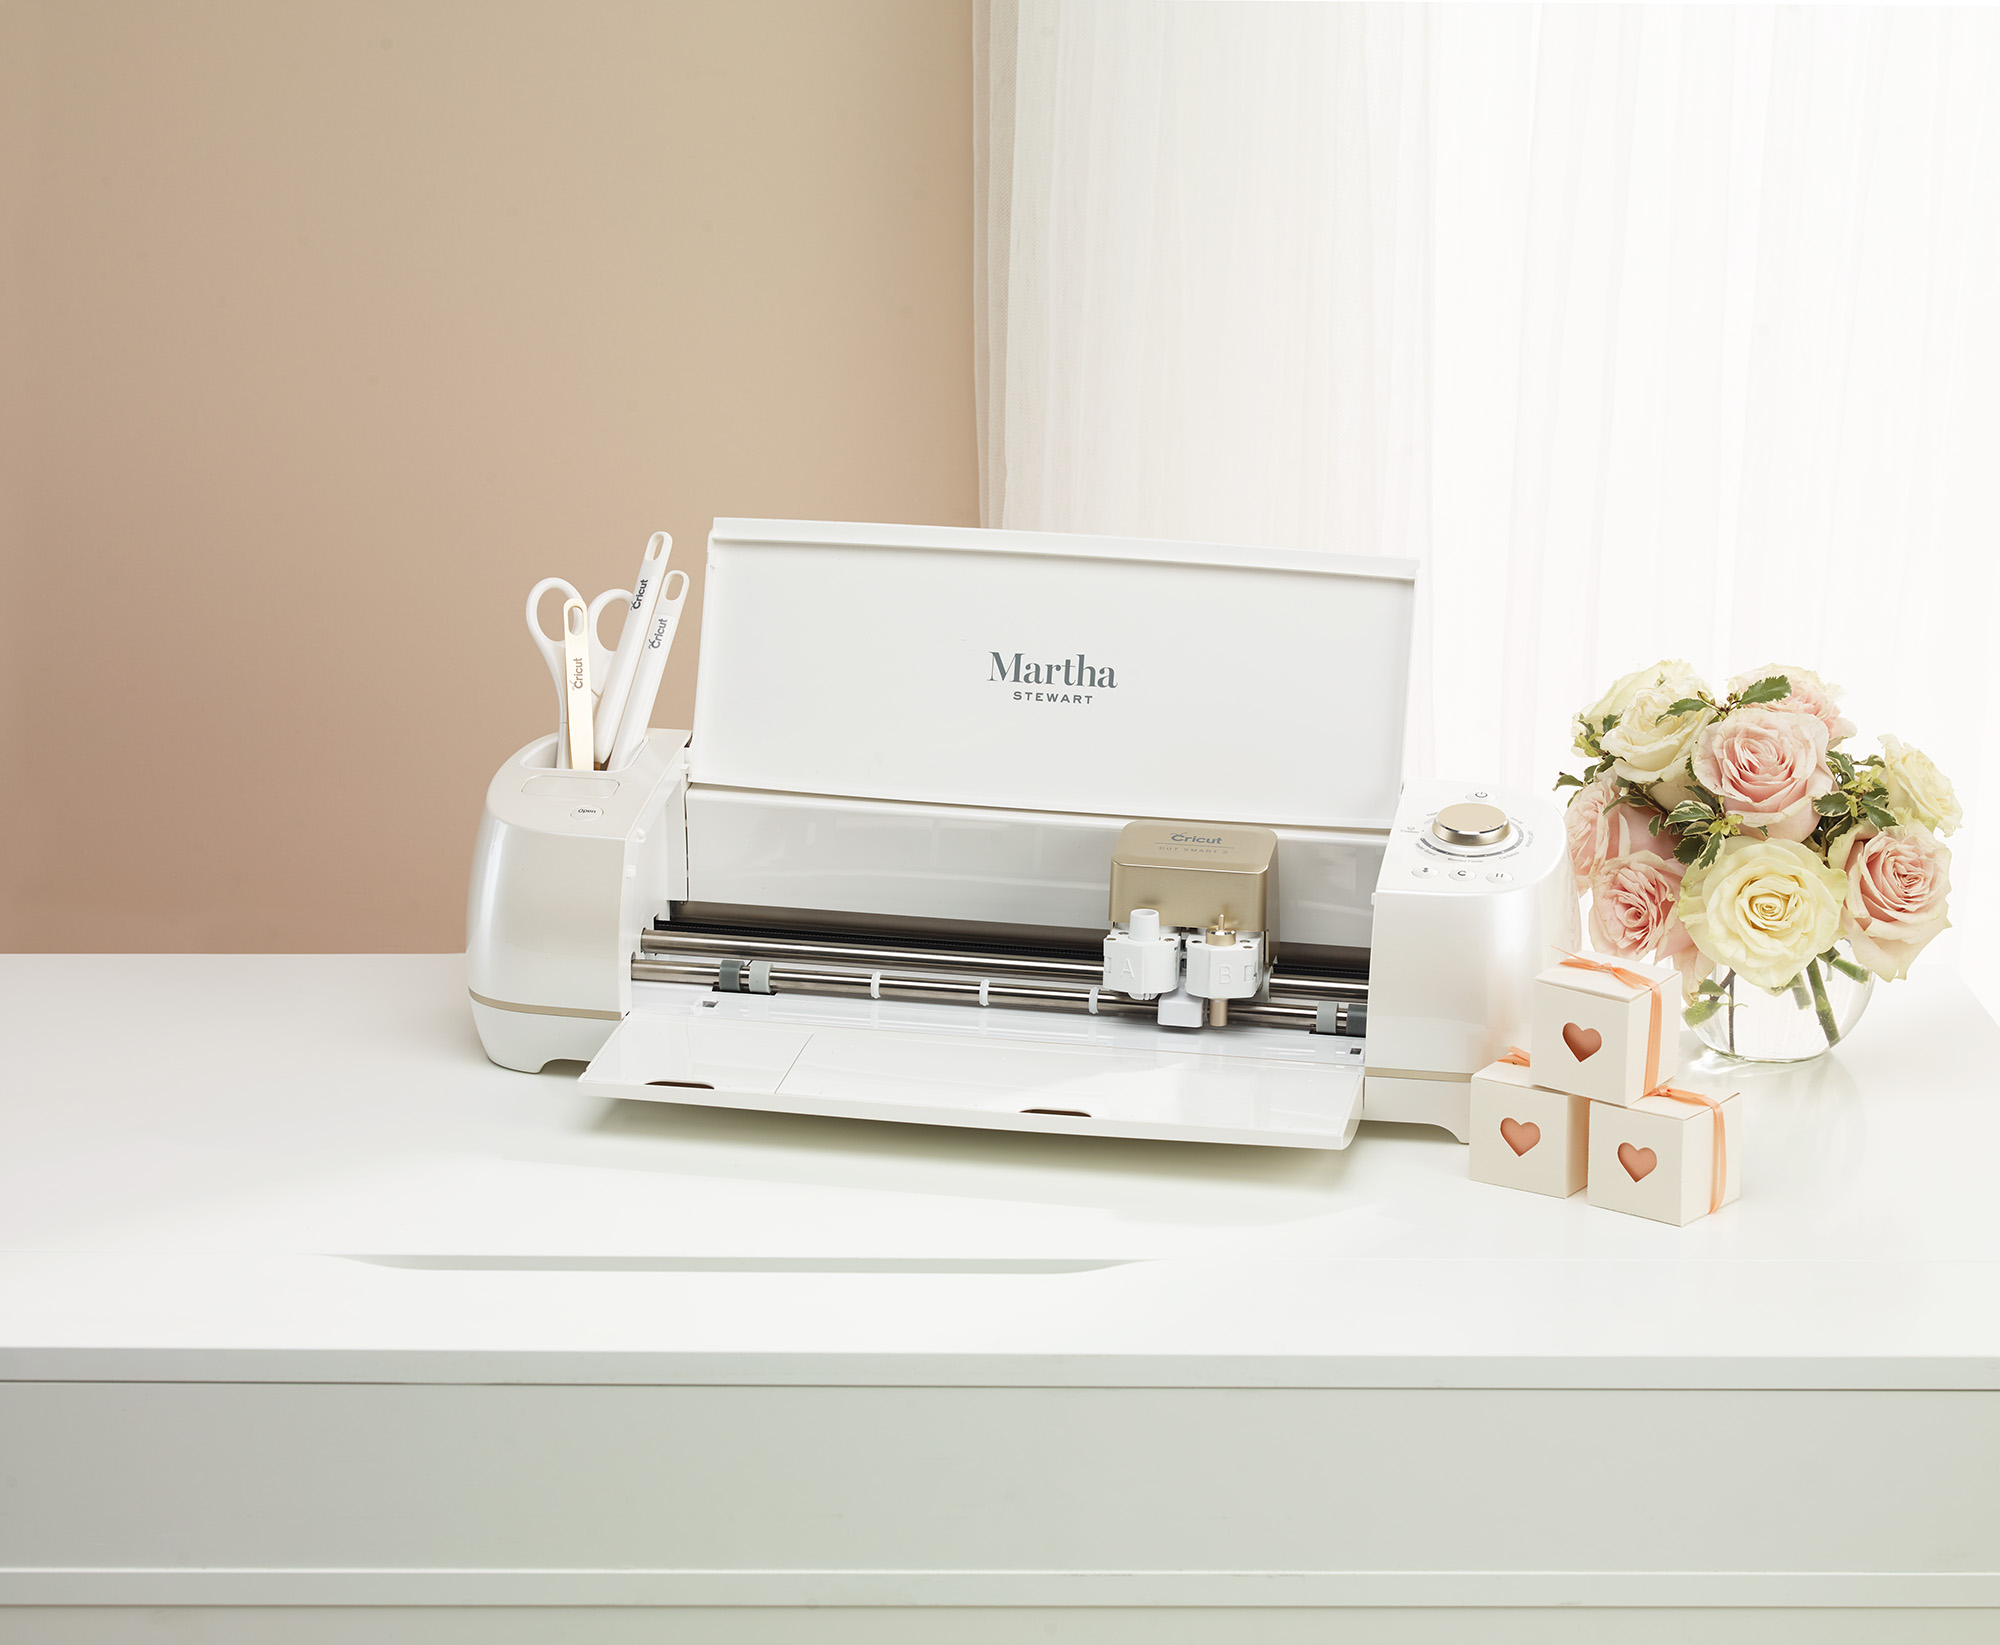 Martha Stewart's Latest Product Launch Just Made DIYing Your Wedding So Much Easier